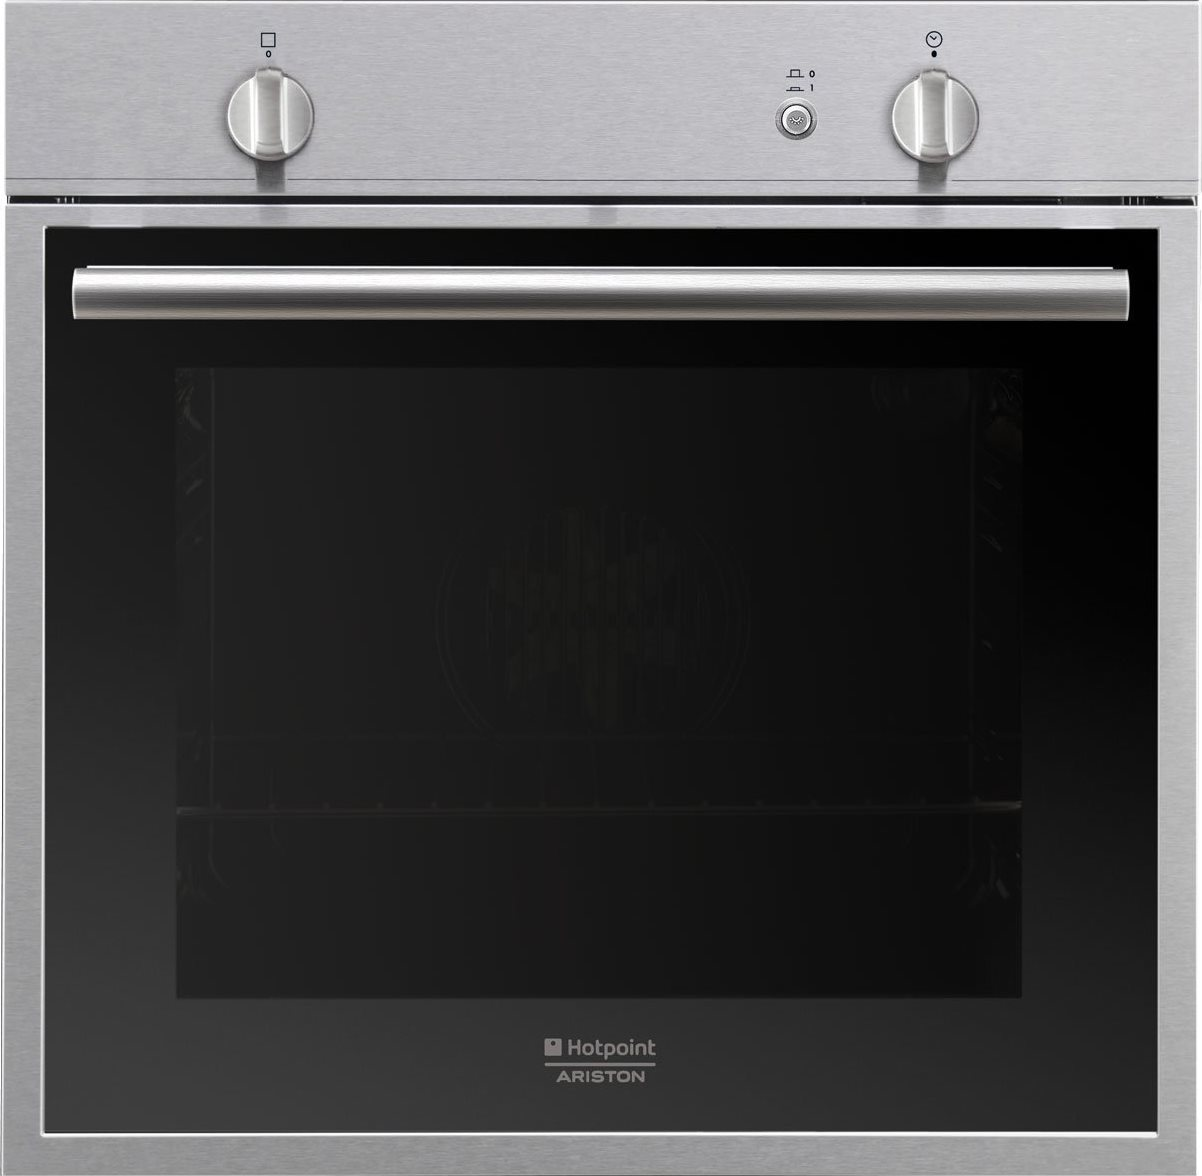 Forno ariston fk g ix ha s forno da incasso a gas con - Ariston forno da incasso ...